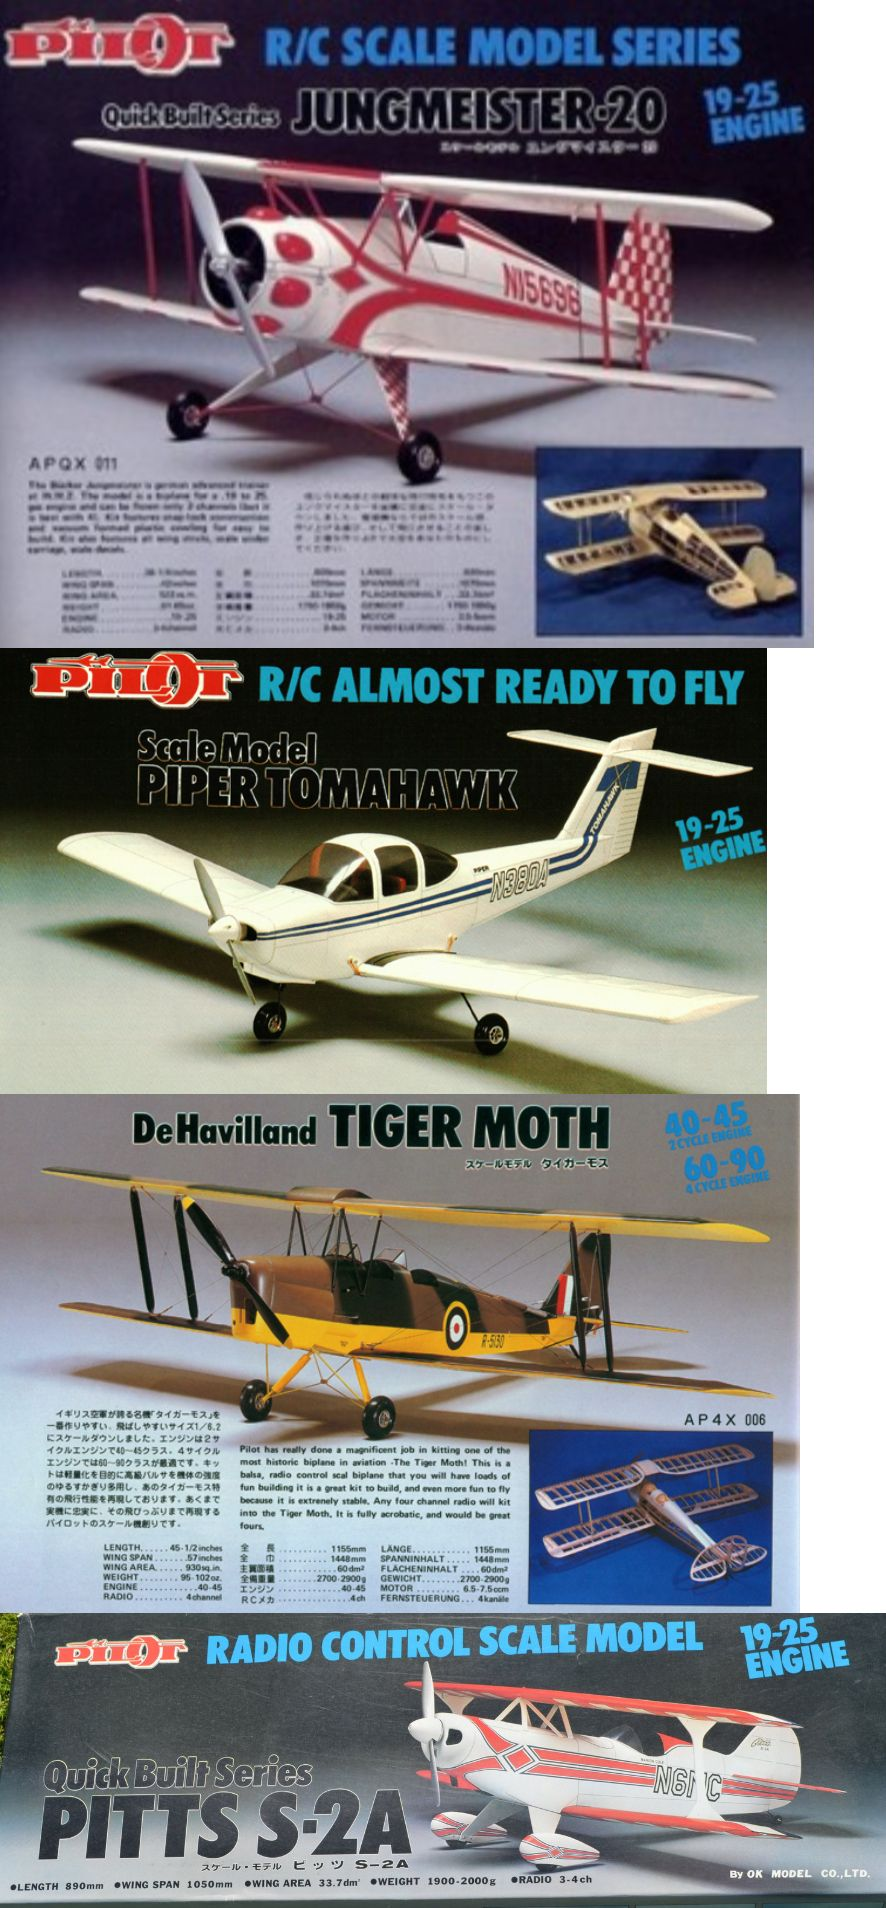 RC Plans Templates and Manuals 182212: Pilot Kit Plans On Cd